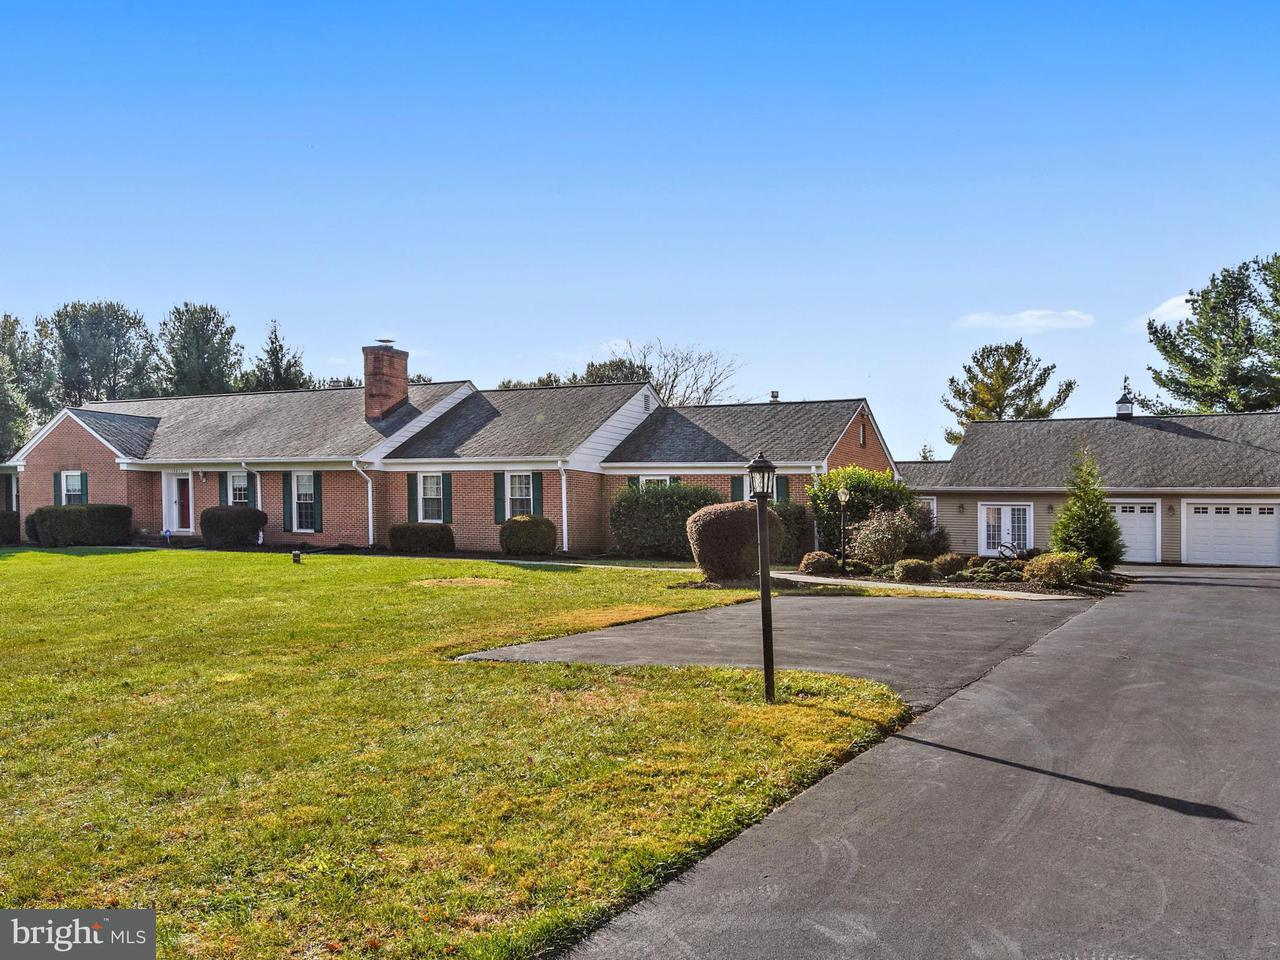 Single Family Home for Sale at 14810 Kelley Farm Drive 14810 Kelley Farm Drive Germantown, Maryland 20874 United States